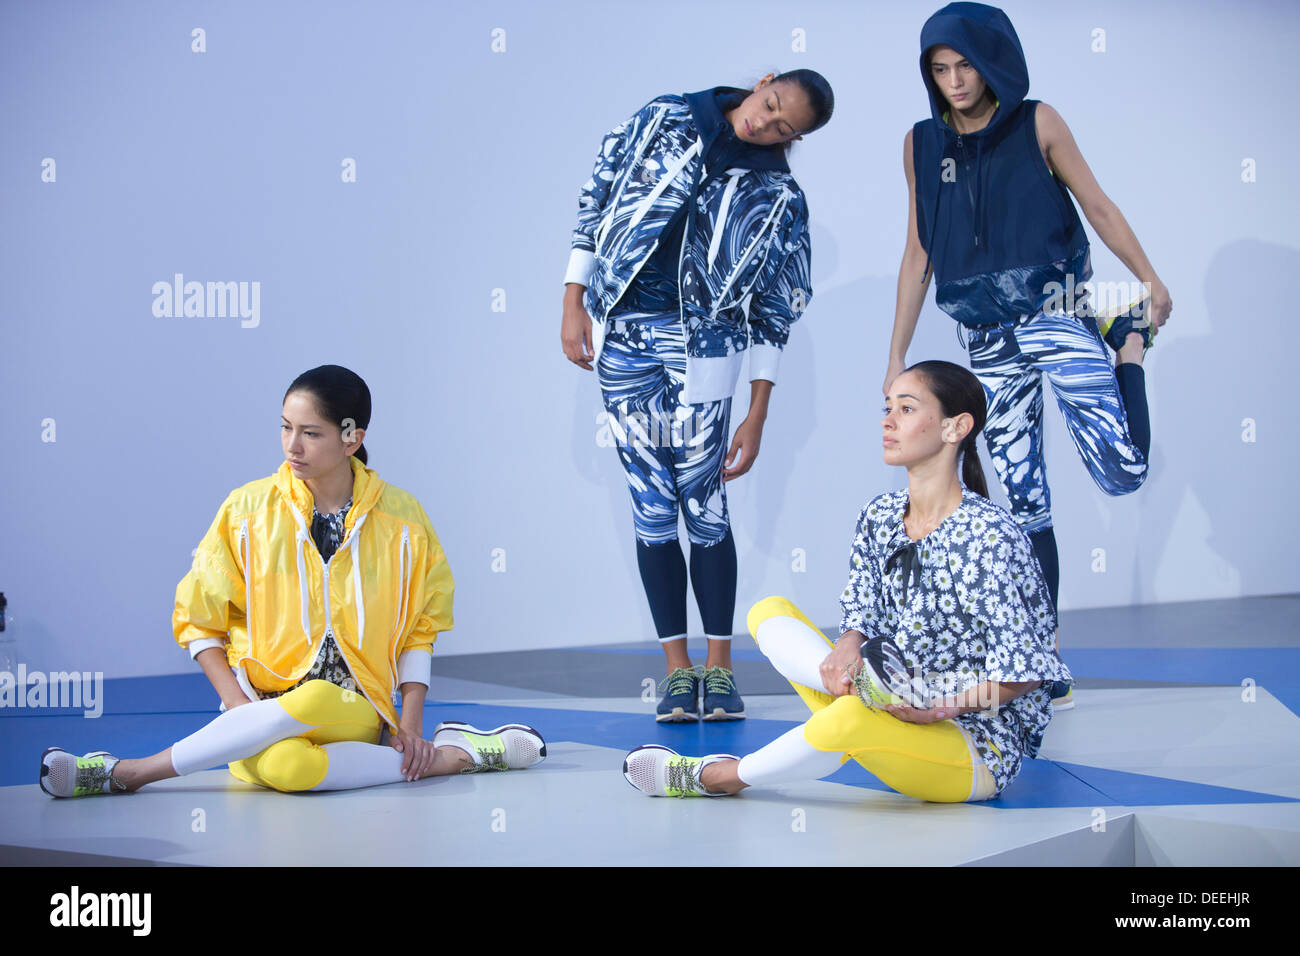 d5922d359c Adidas by Stella McCartney presentation of The Spring Summer 2014 collection